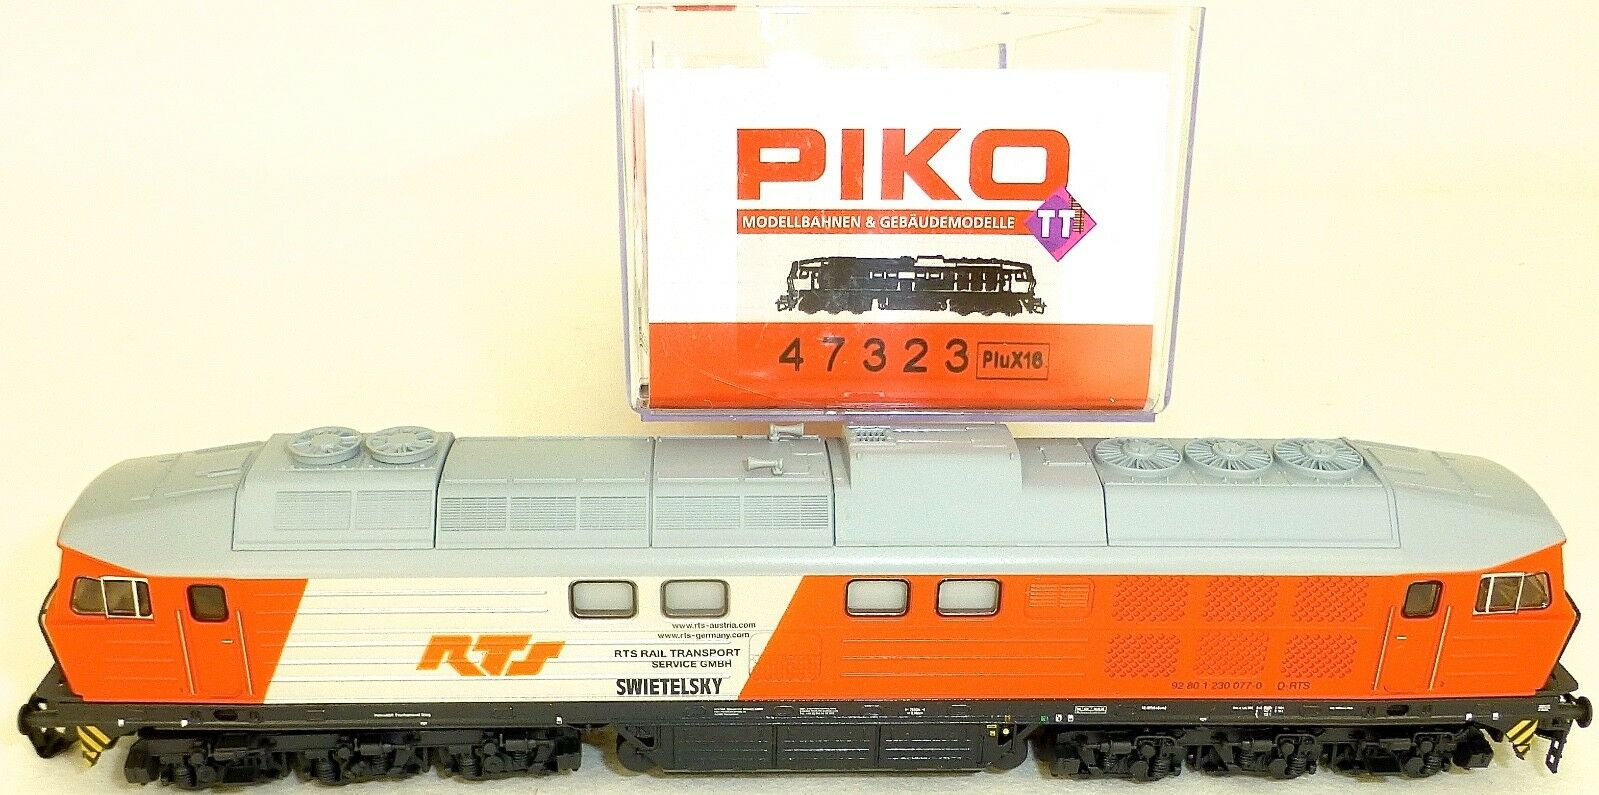 230 077 RTS LOCOMOTIVE DIESEL LUDMILLA (comme BR 130 ) PLUX16 PIKO 47323 TT